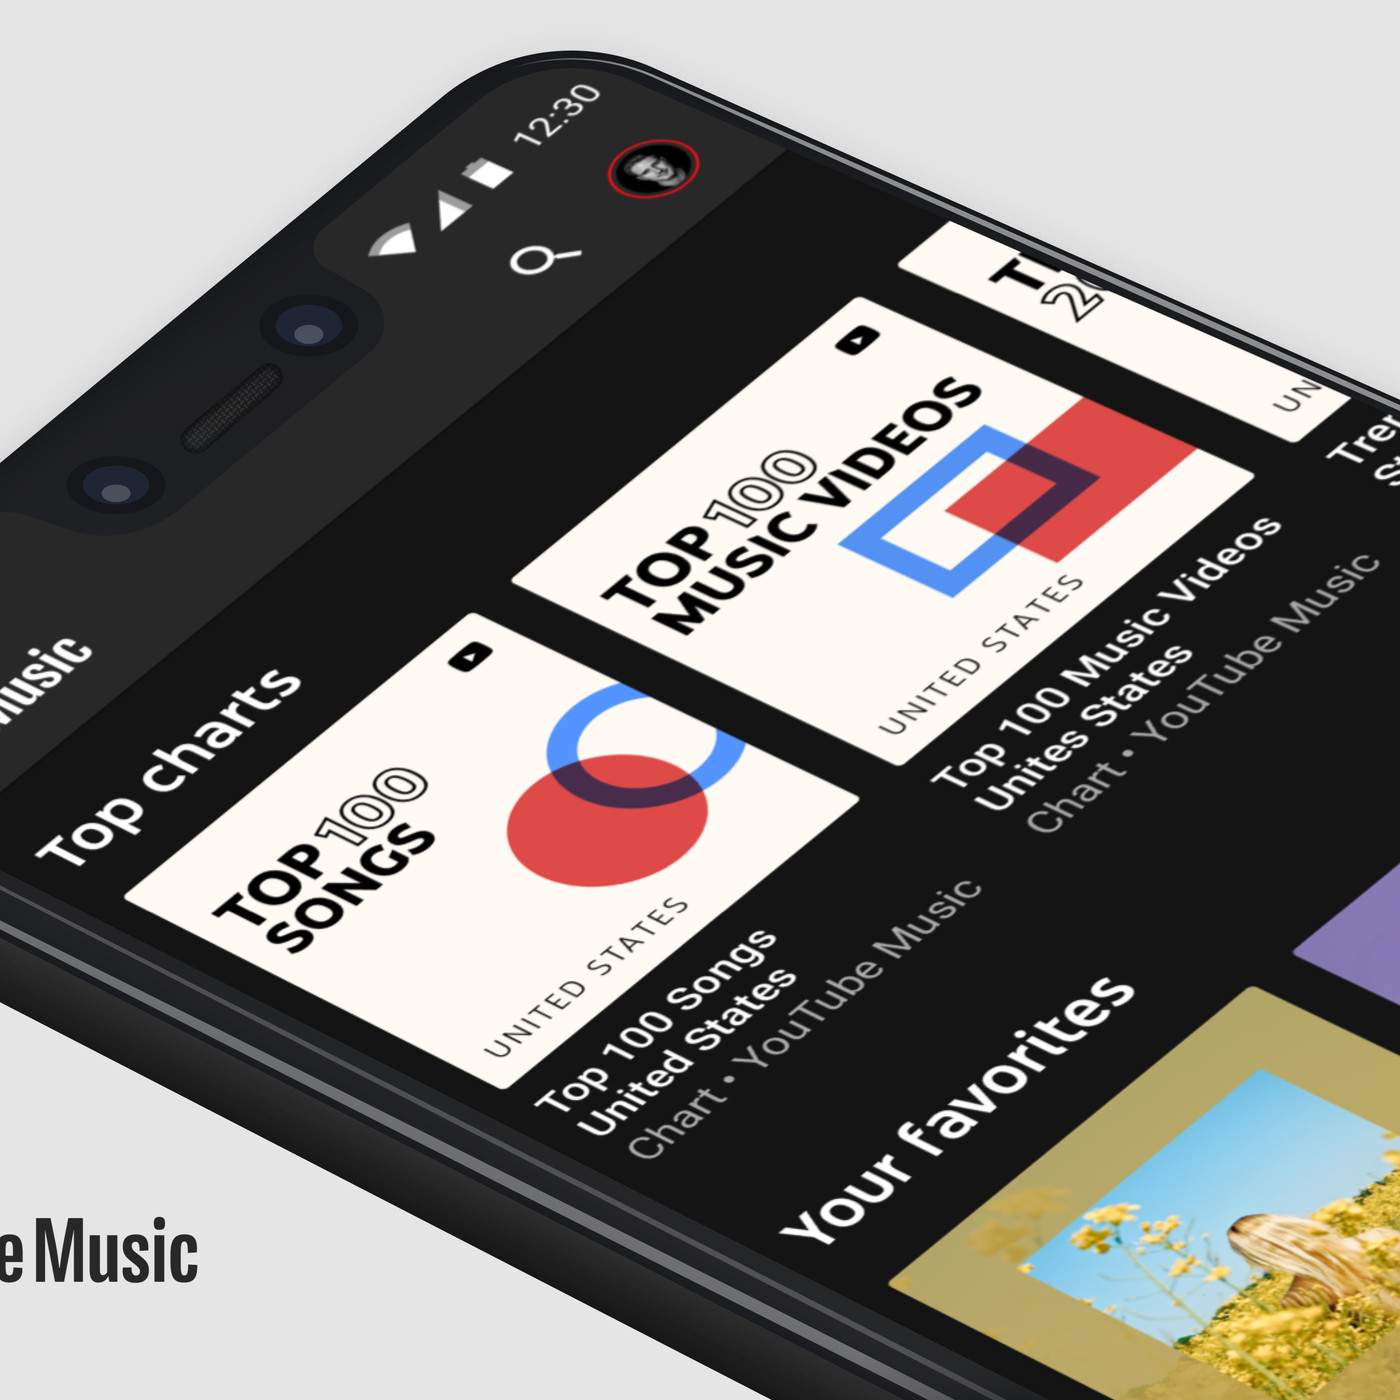 Youtube Music Will Now Come Preinstalled On Android Devices The Verge